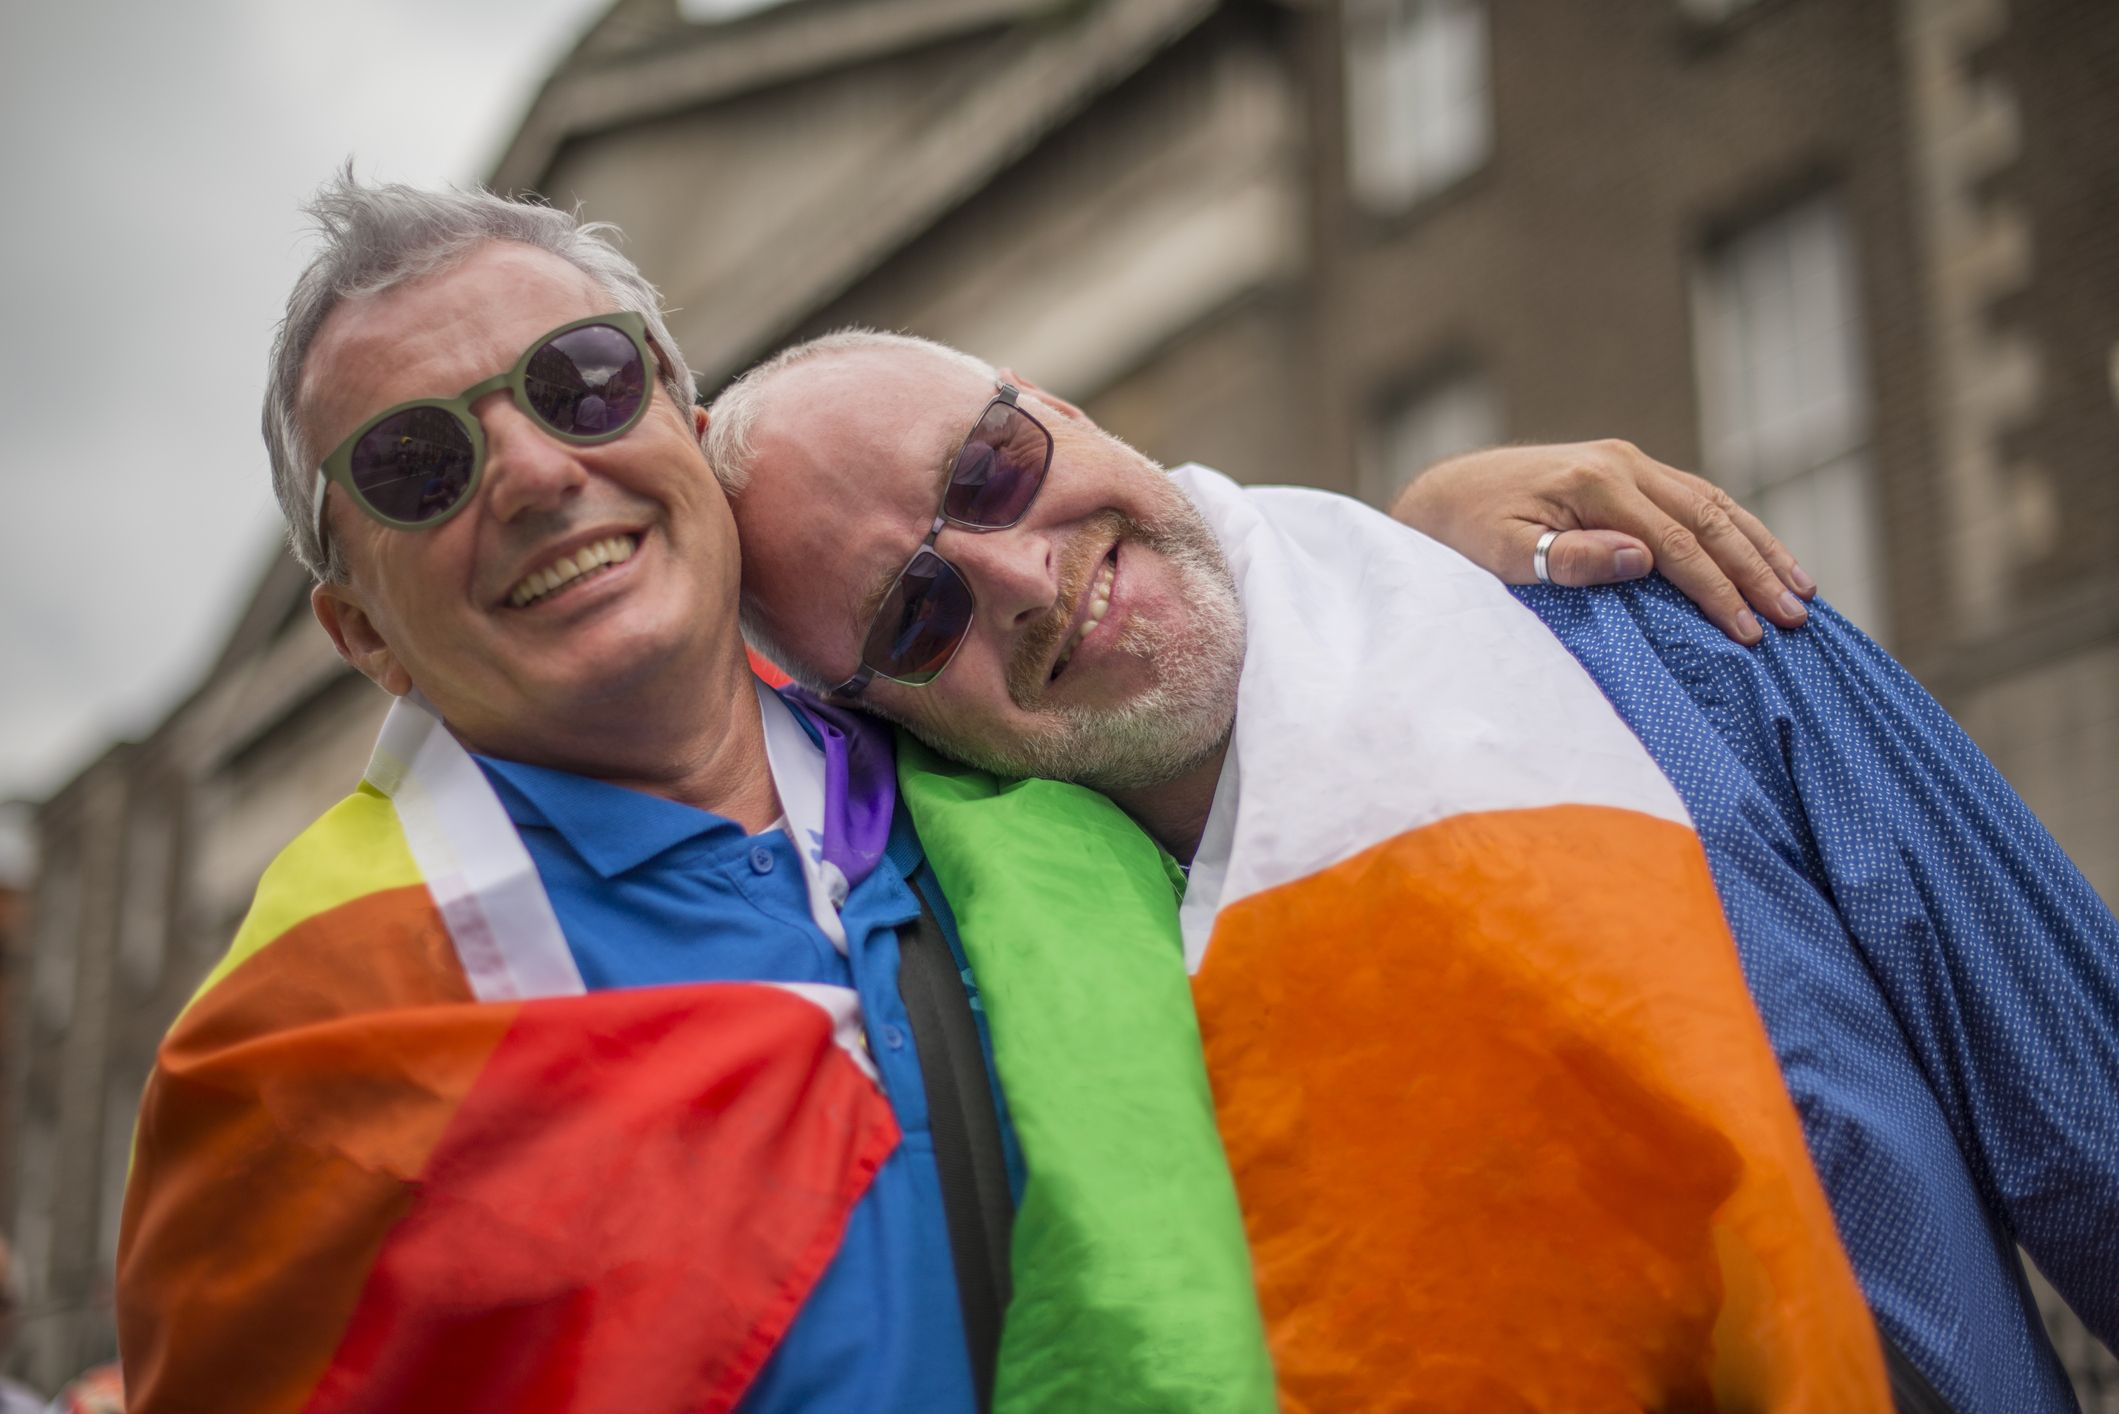 The Outing: Irelands gay matchmaking festival | Travel | The